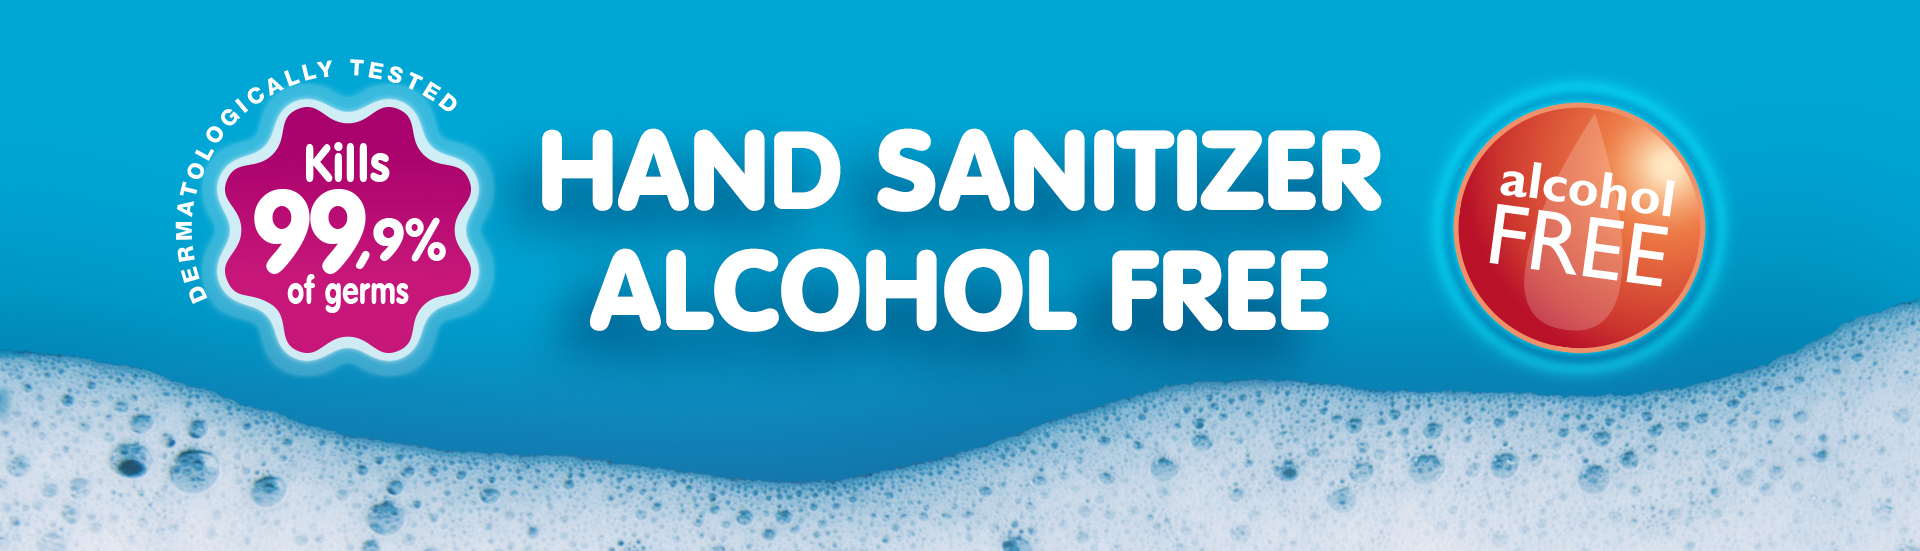 Hand Sanitizer Alcohol Free